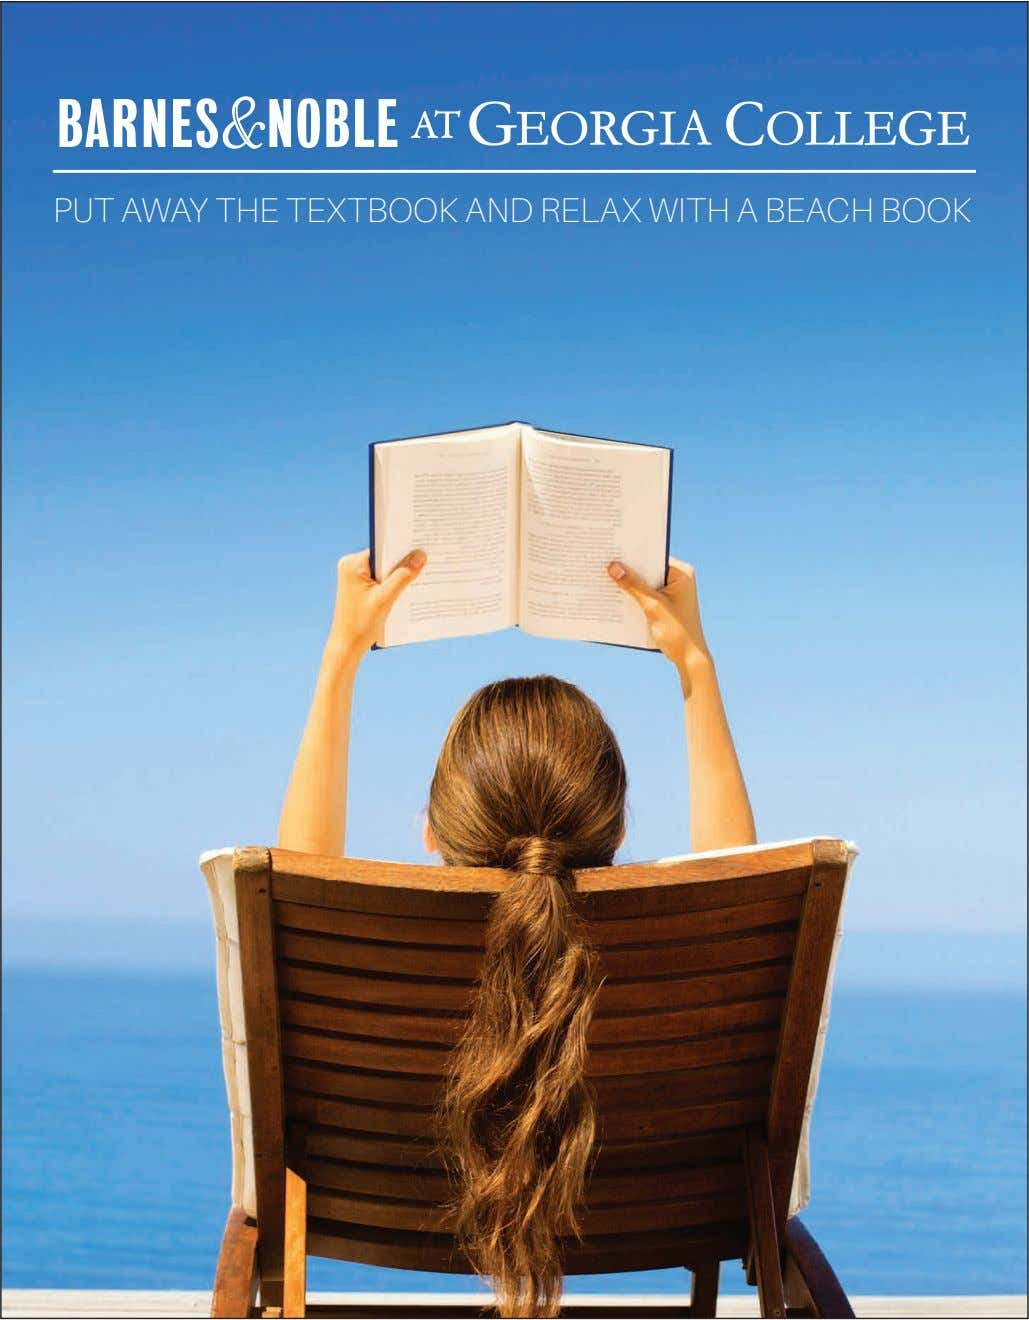 PUT AWAY THE TEXTBOOK AND RELAX WITH A BEACH BOOK